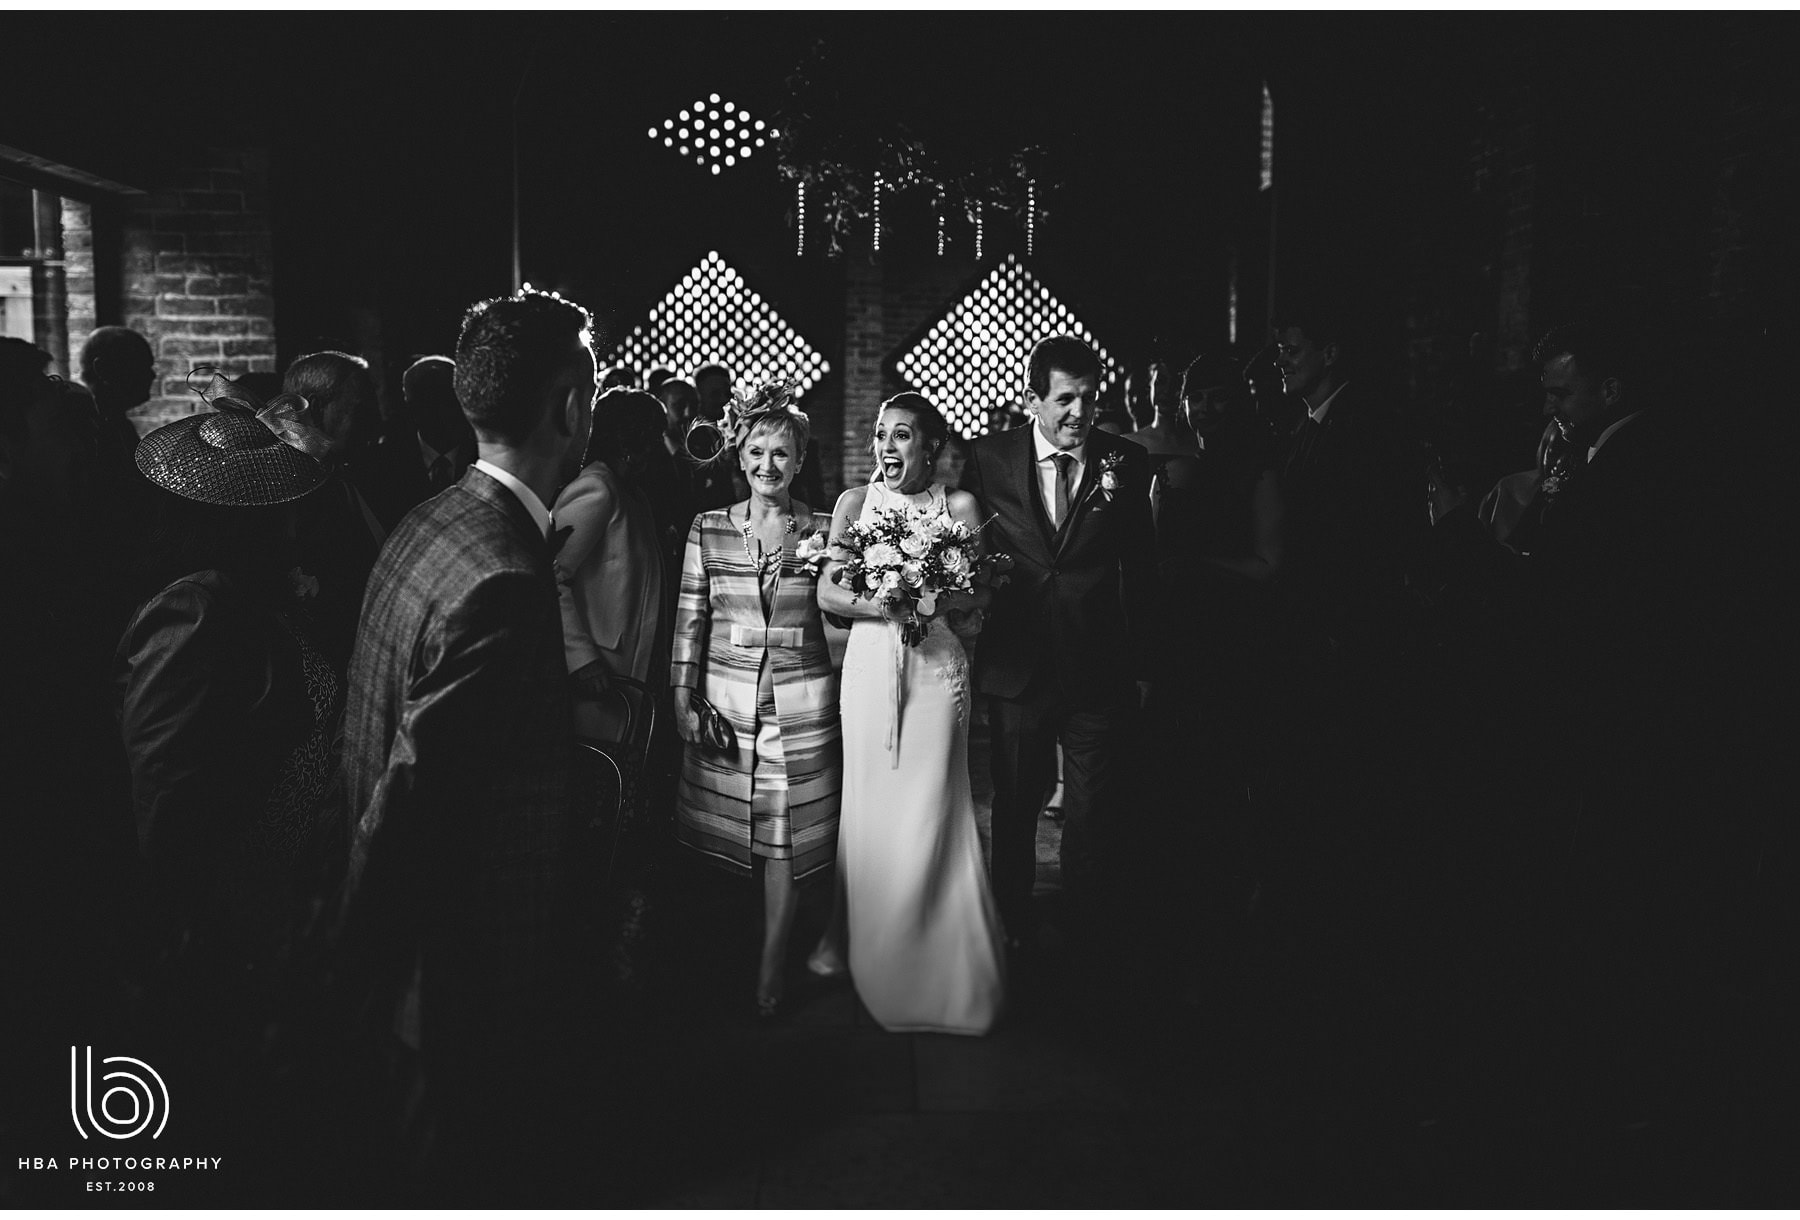 the bride as she sees the groom